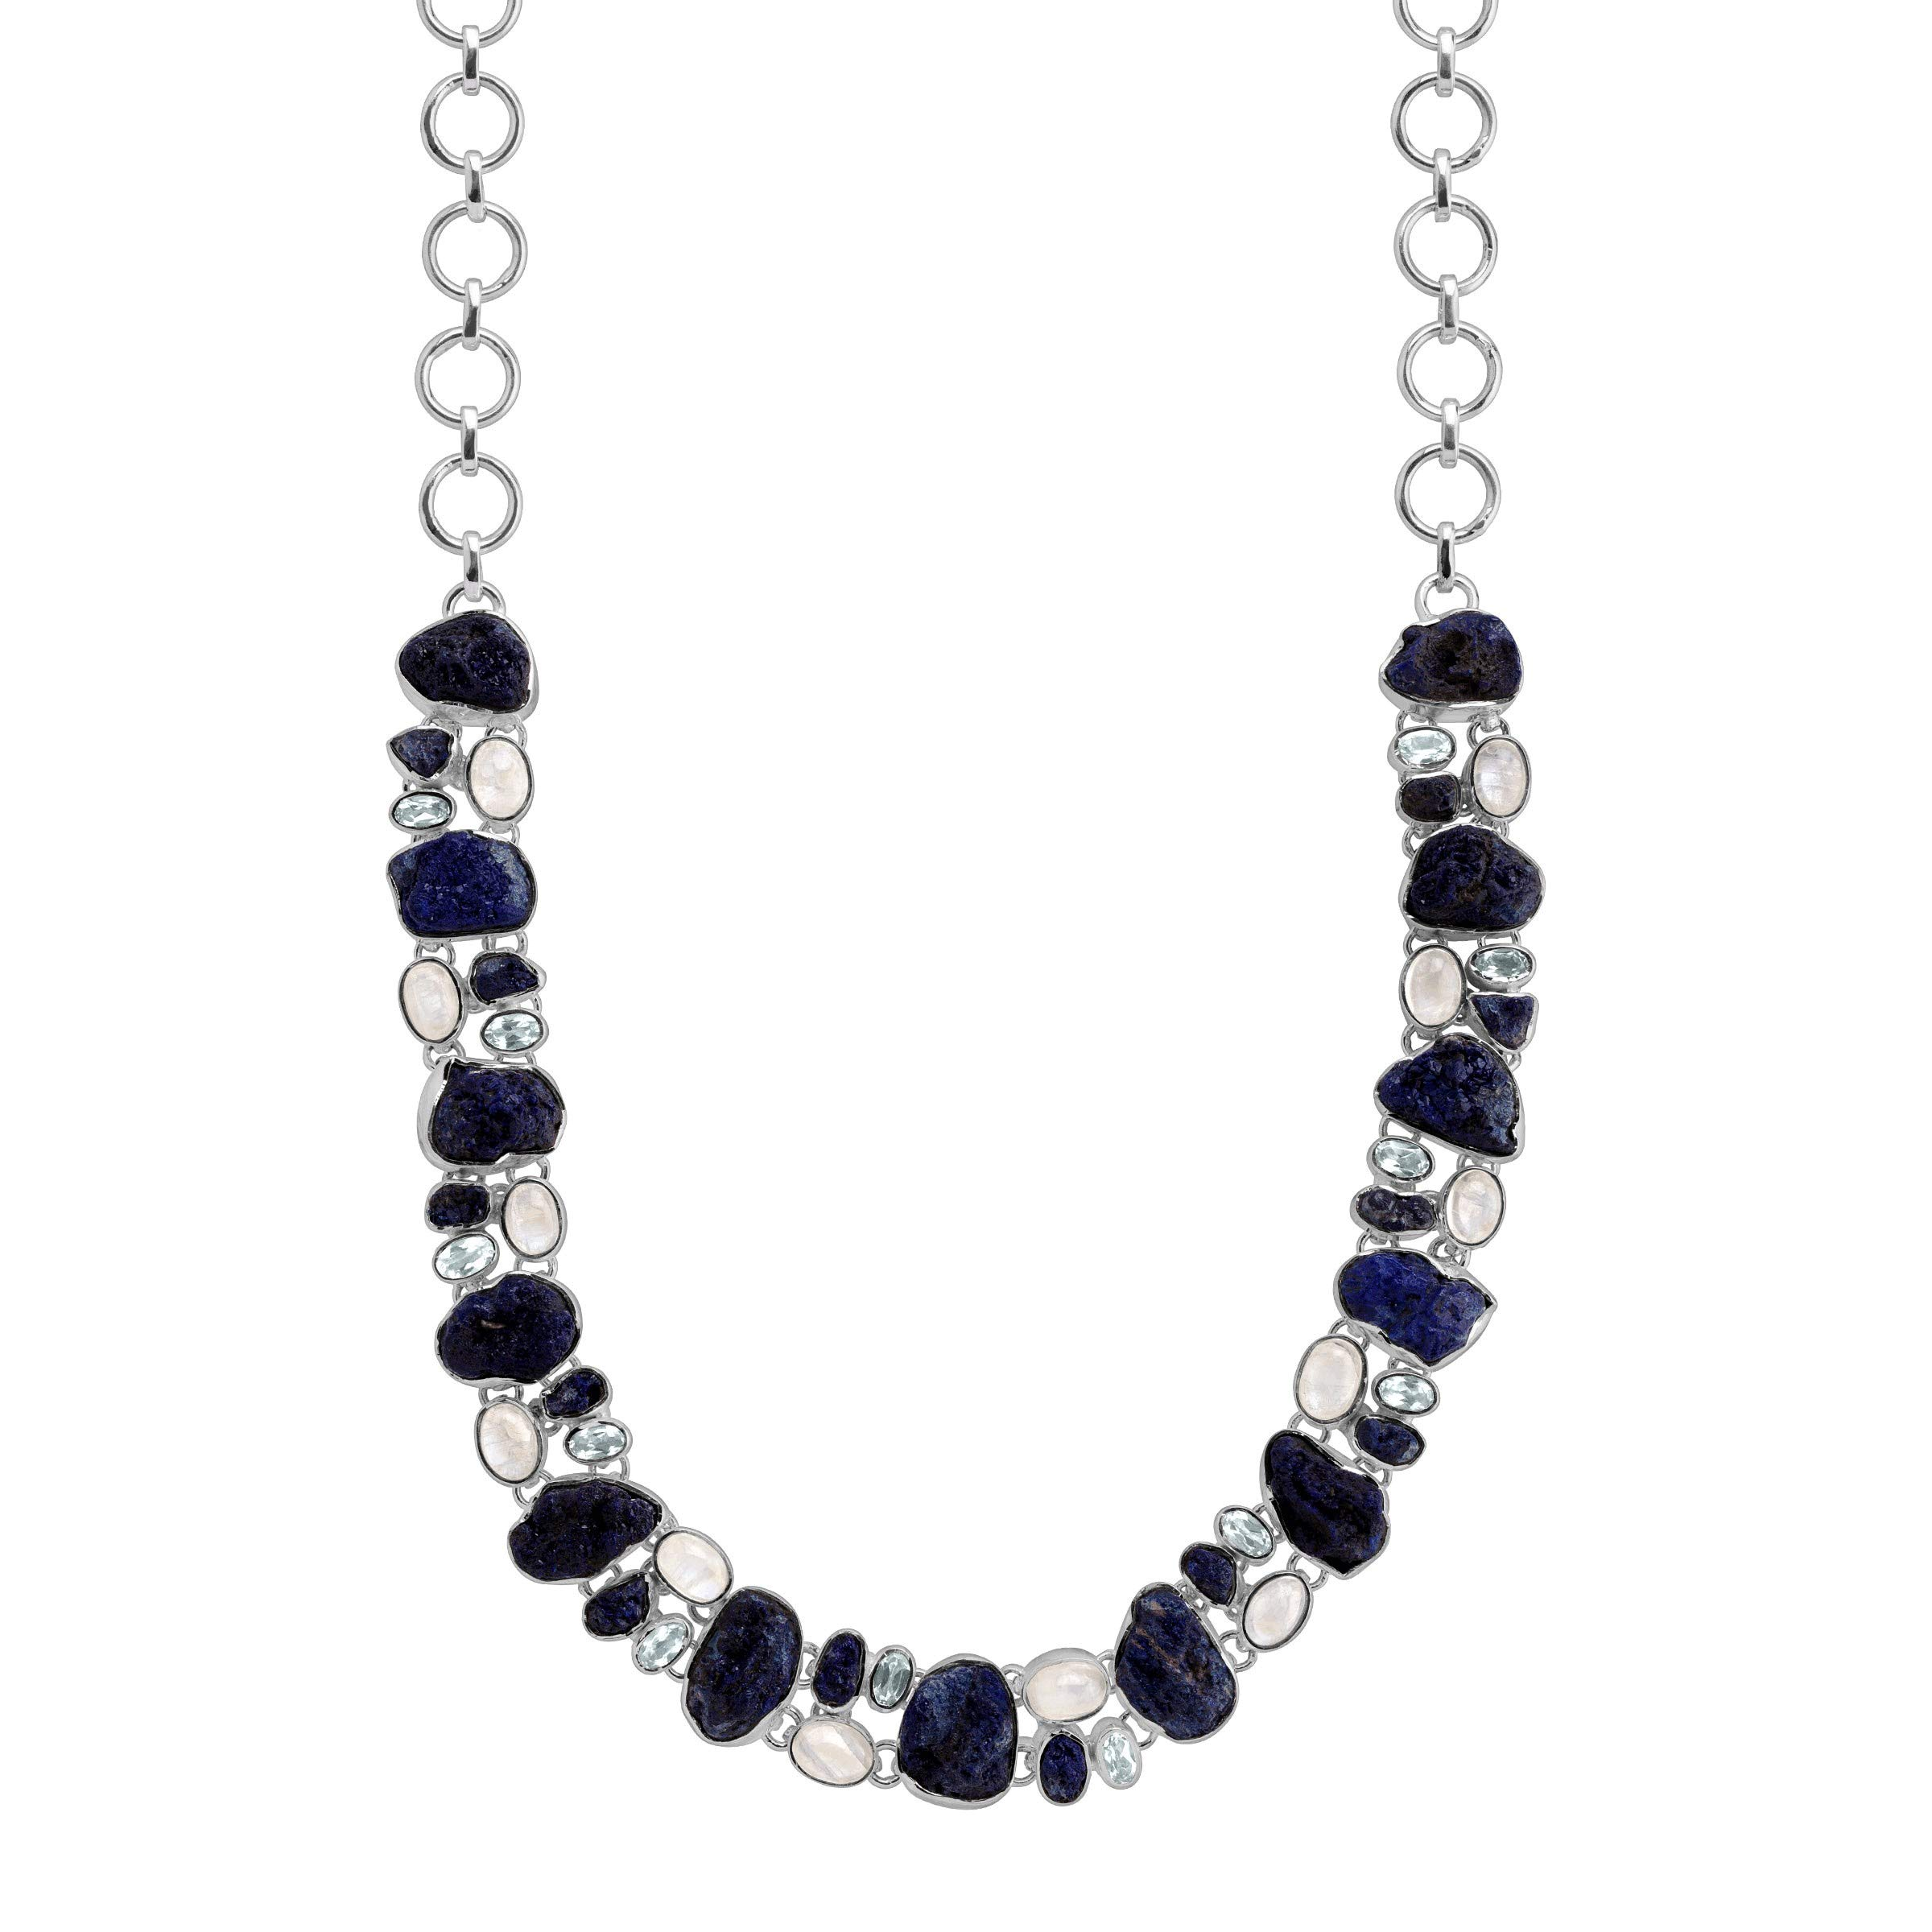 Silpada 'Pacific' Natural Mixed Blue Stone Necklace in Sterling Silver by Silpada